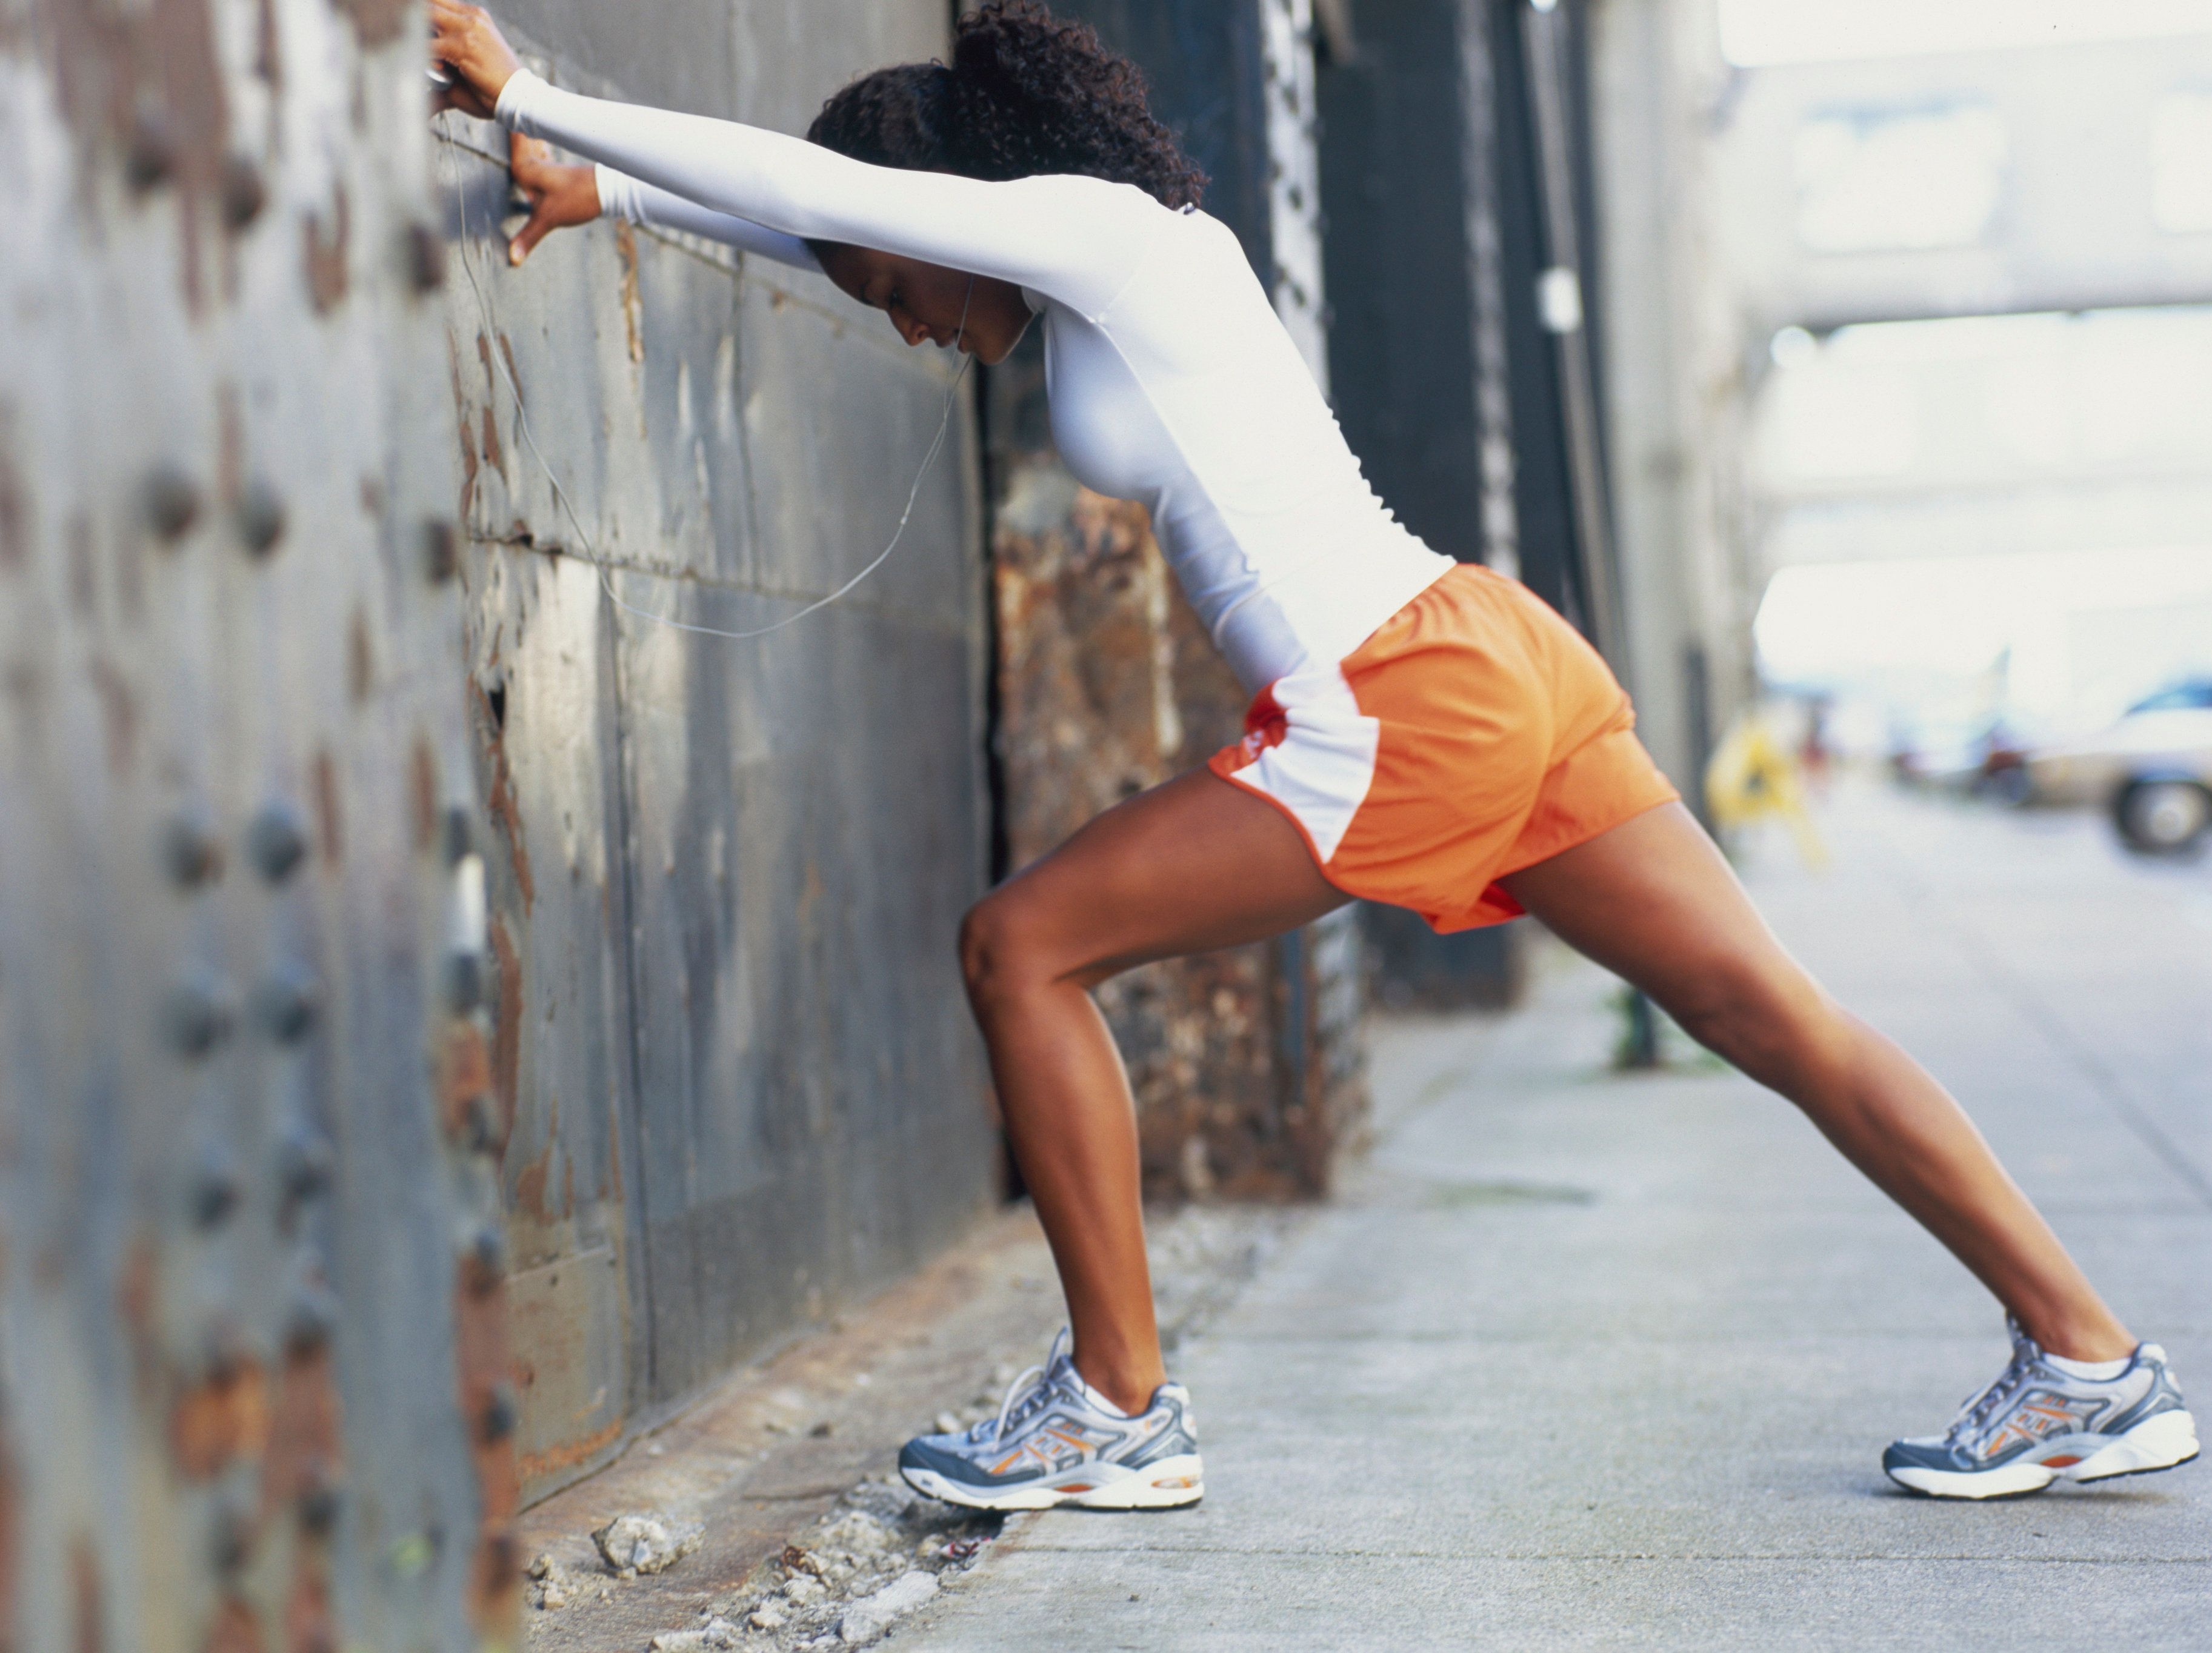 Why Women Are 'Still Being Excluded' From Exercise